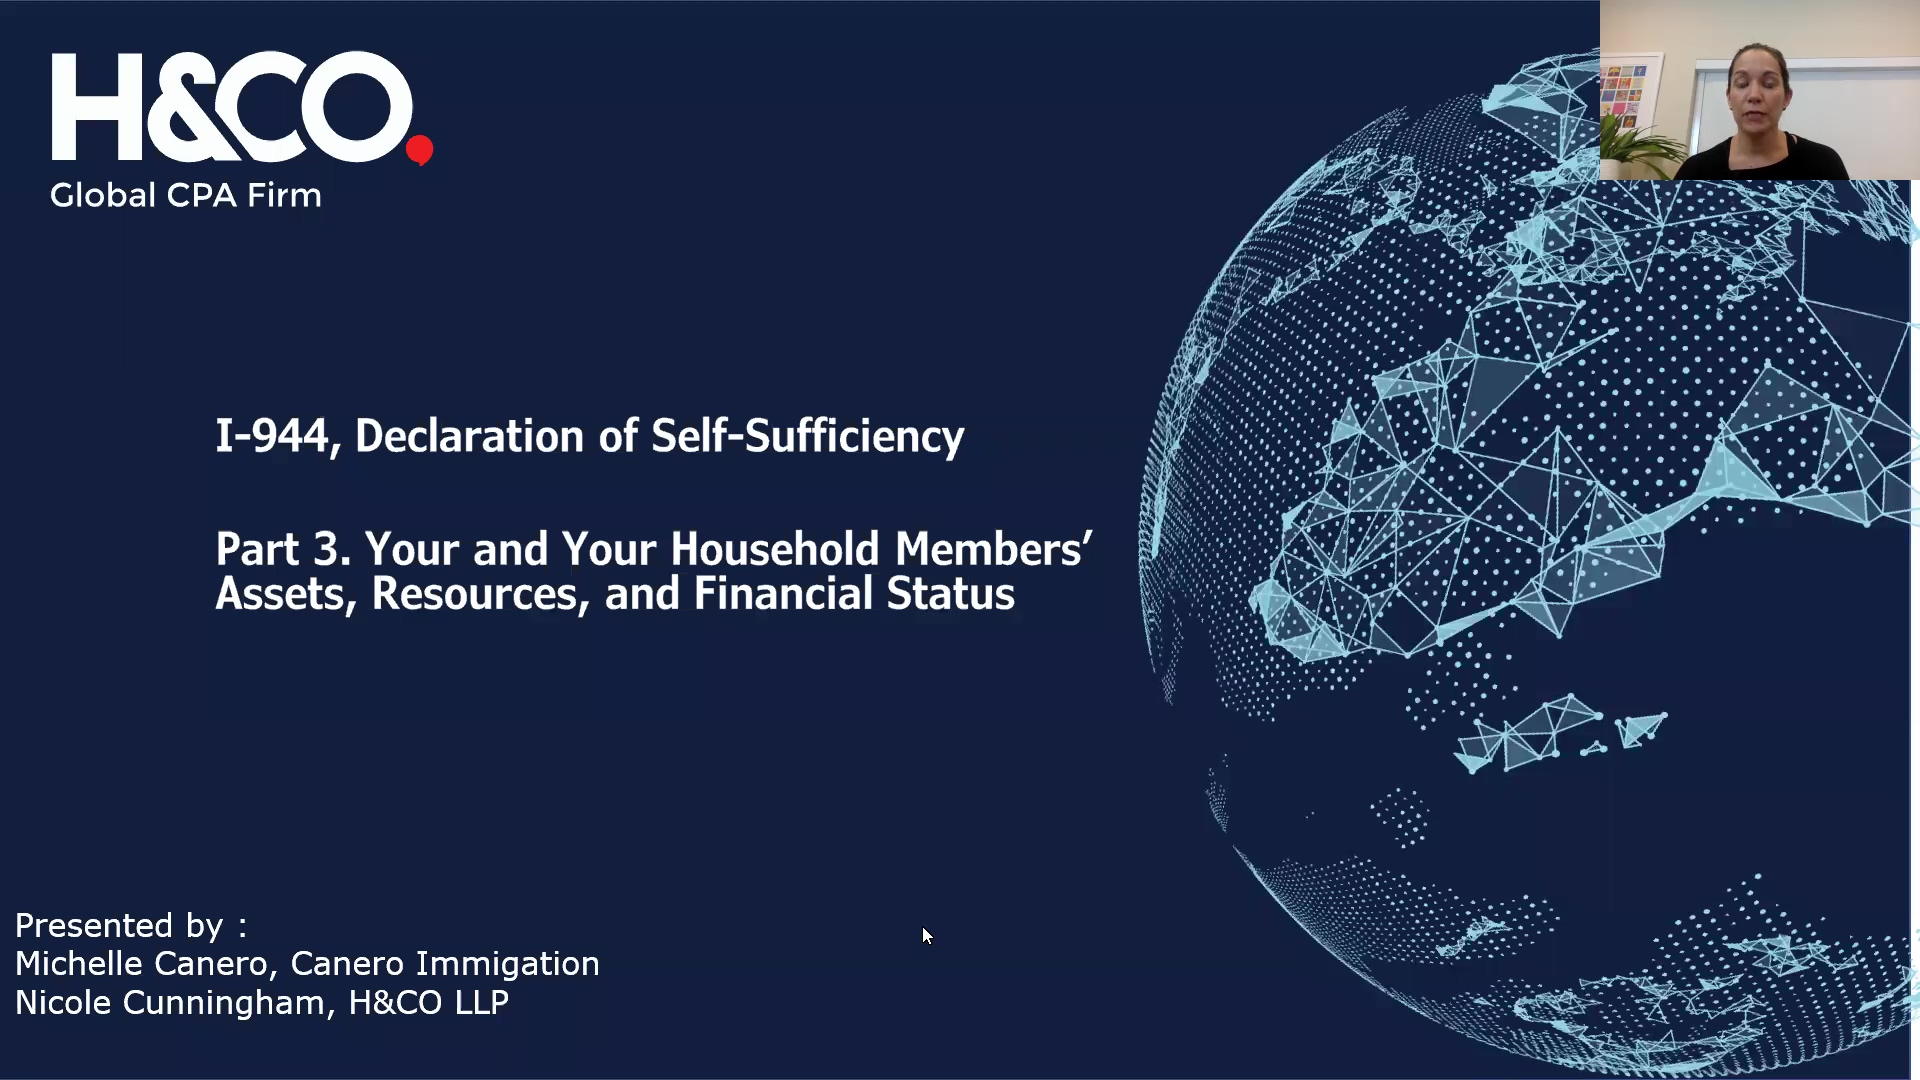 GMT20200626-150103_Completing-your-Form-I-944--the-Declaration-of-Self-Sufficiency_1920x1080